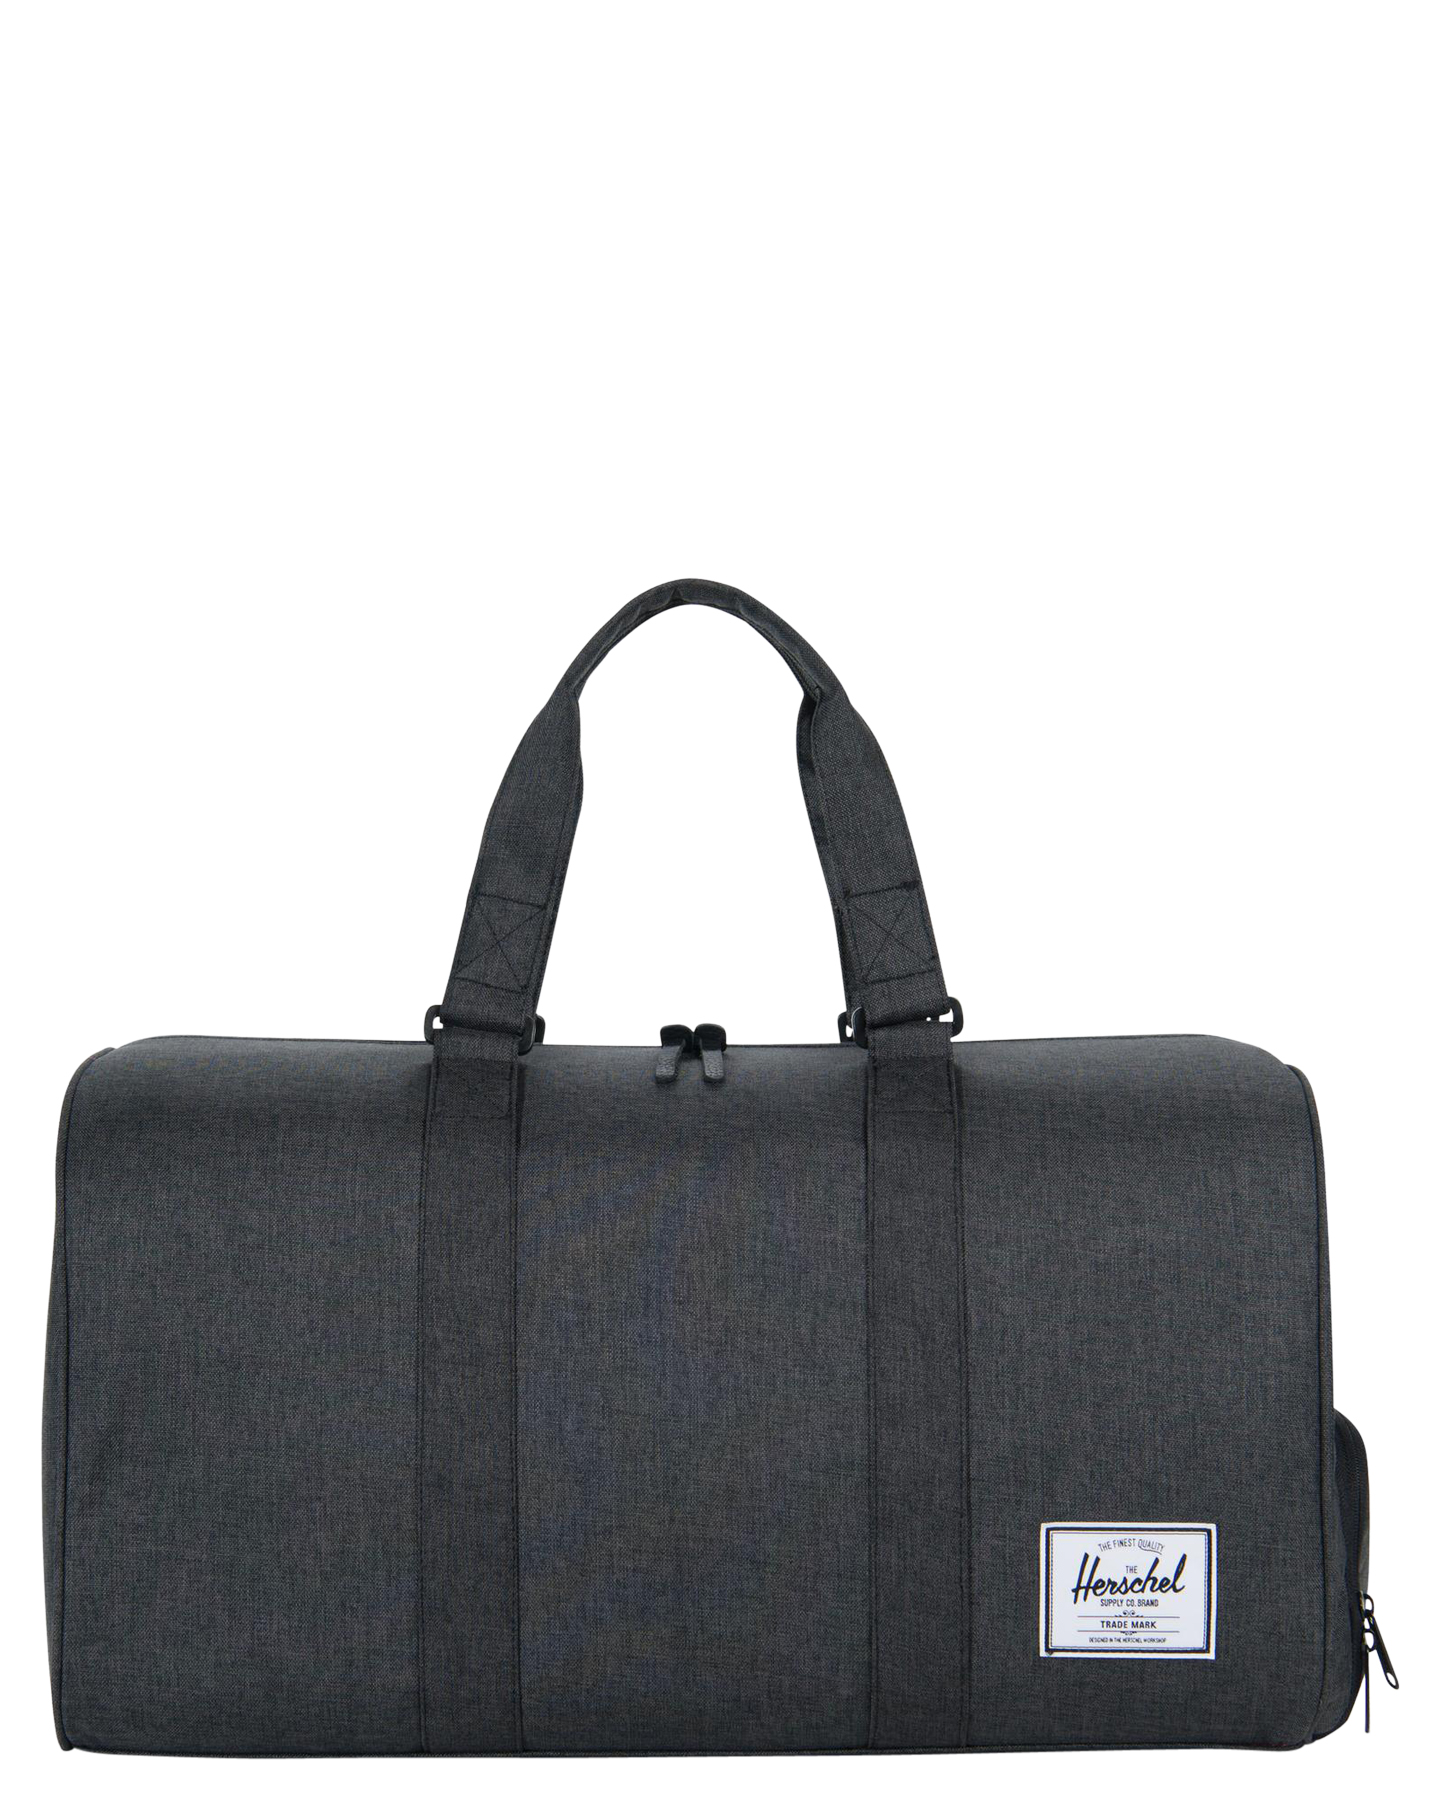 3e5a48de1cb New Herschel Supply Co Men s Novel 42L Duffle Bag Mesh Black